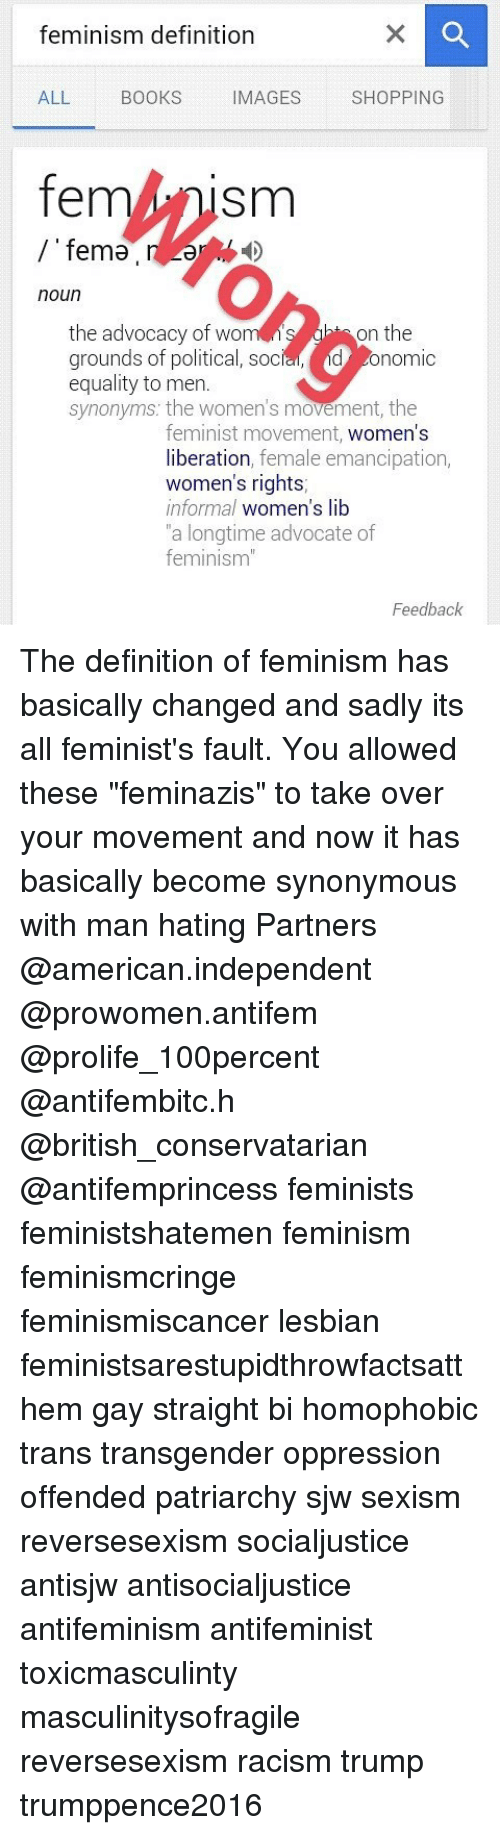 feminism and institutional oppression Successful political and social agitation by the progressive movement has cemented such gains that men can now be considered institutionally oppressed in america, even according to feminist definitions of oppression here are three definitions: from a slutwalk wiki: institutional oppression is the.